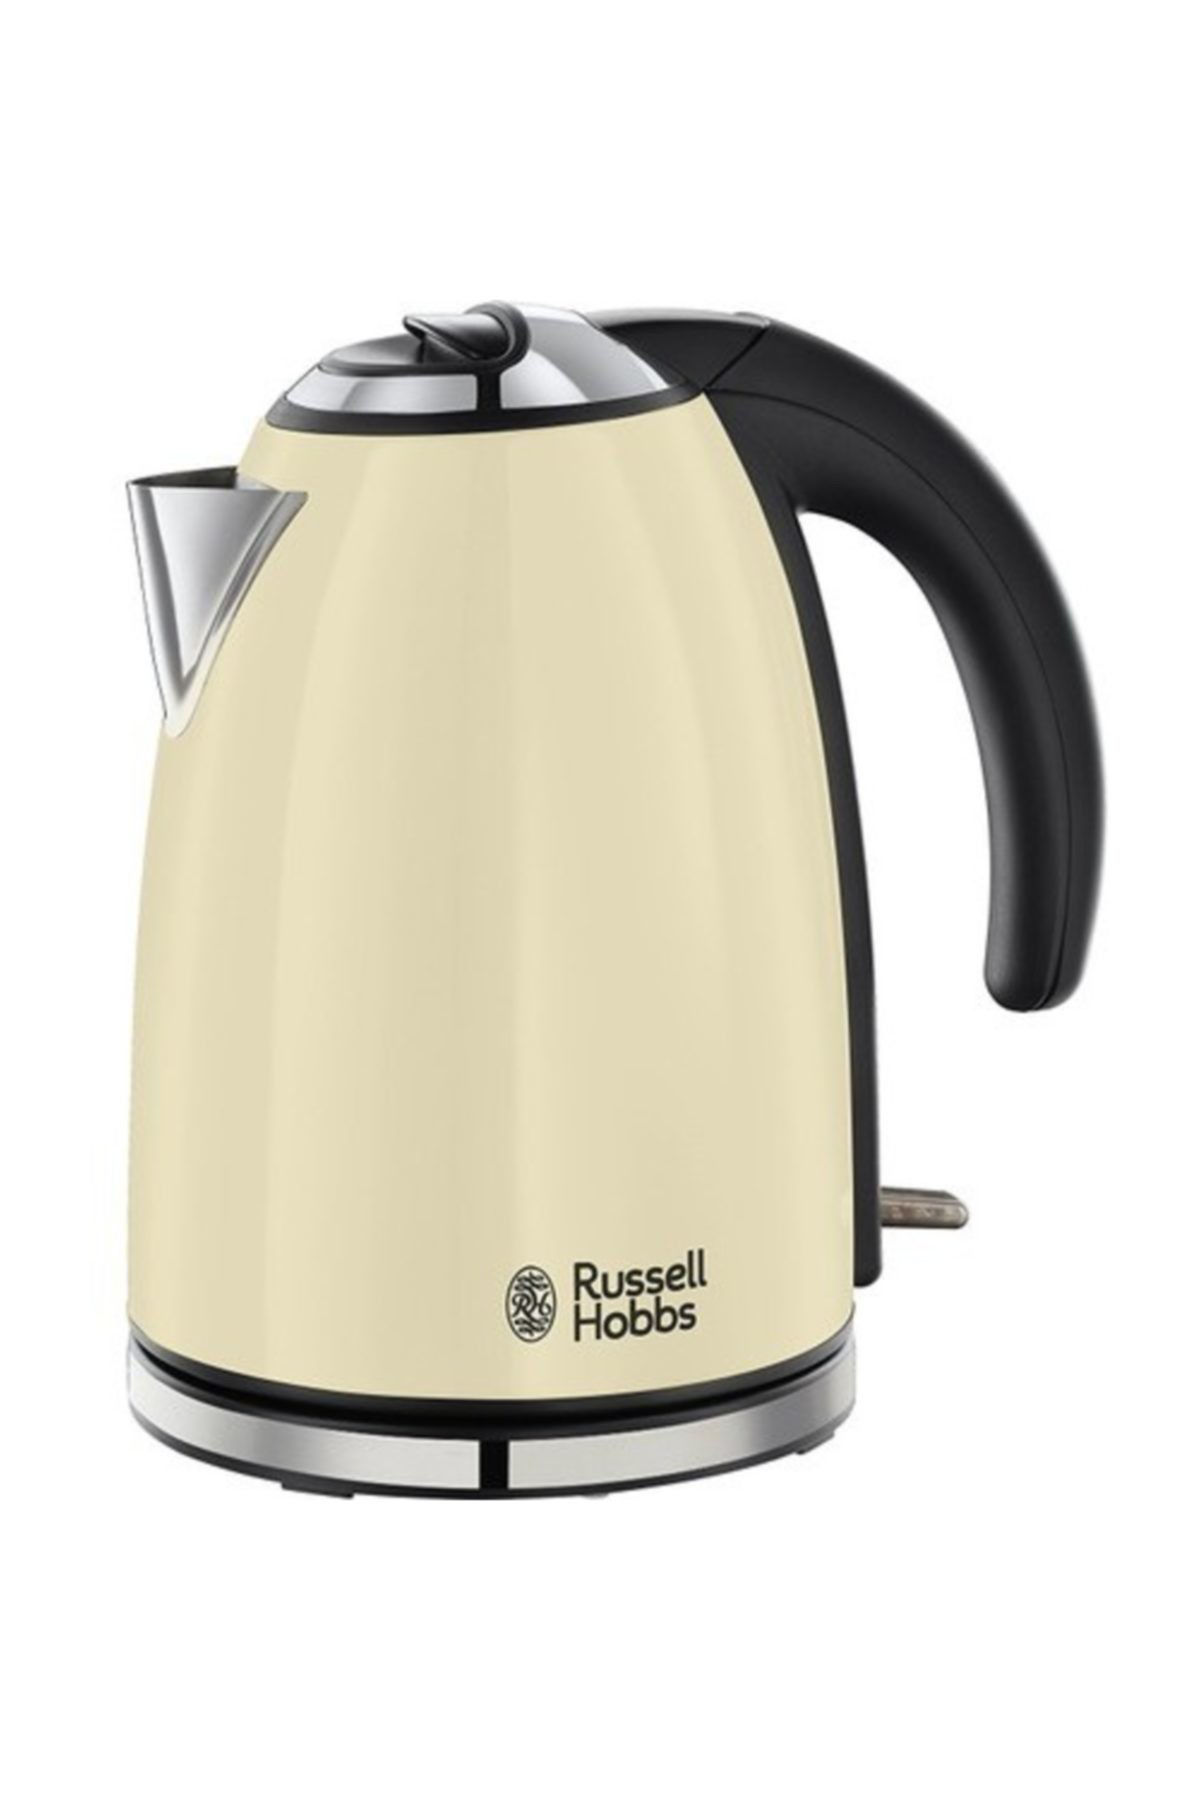 Picture of Russell Hobbs 18943-70 / RH Colors Classic Water Heater - Cream-2200W - 1.7L